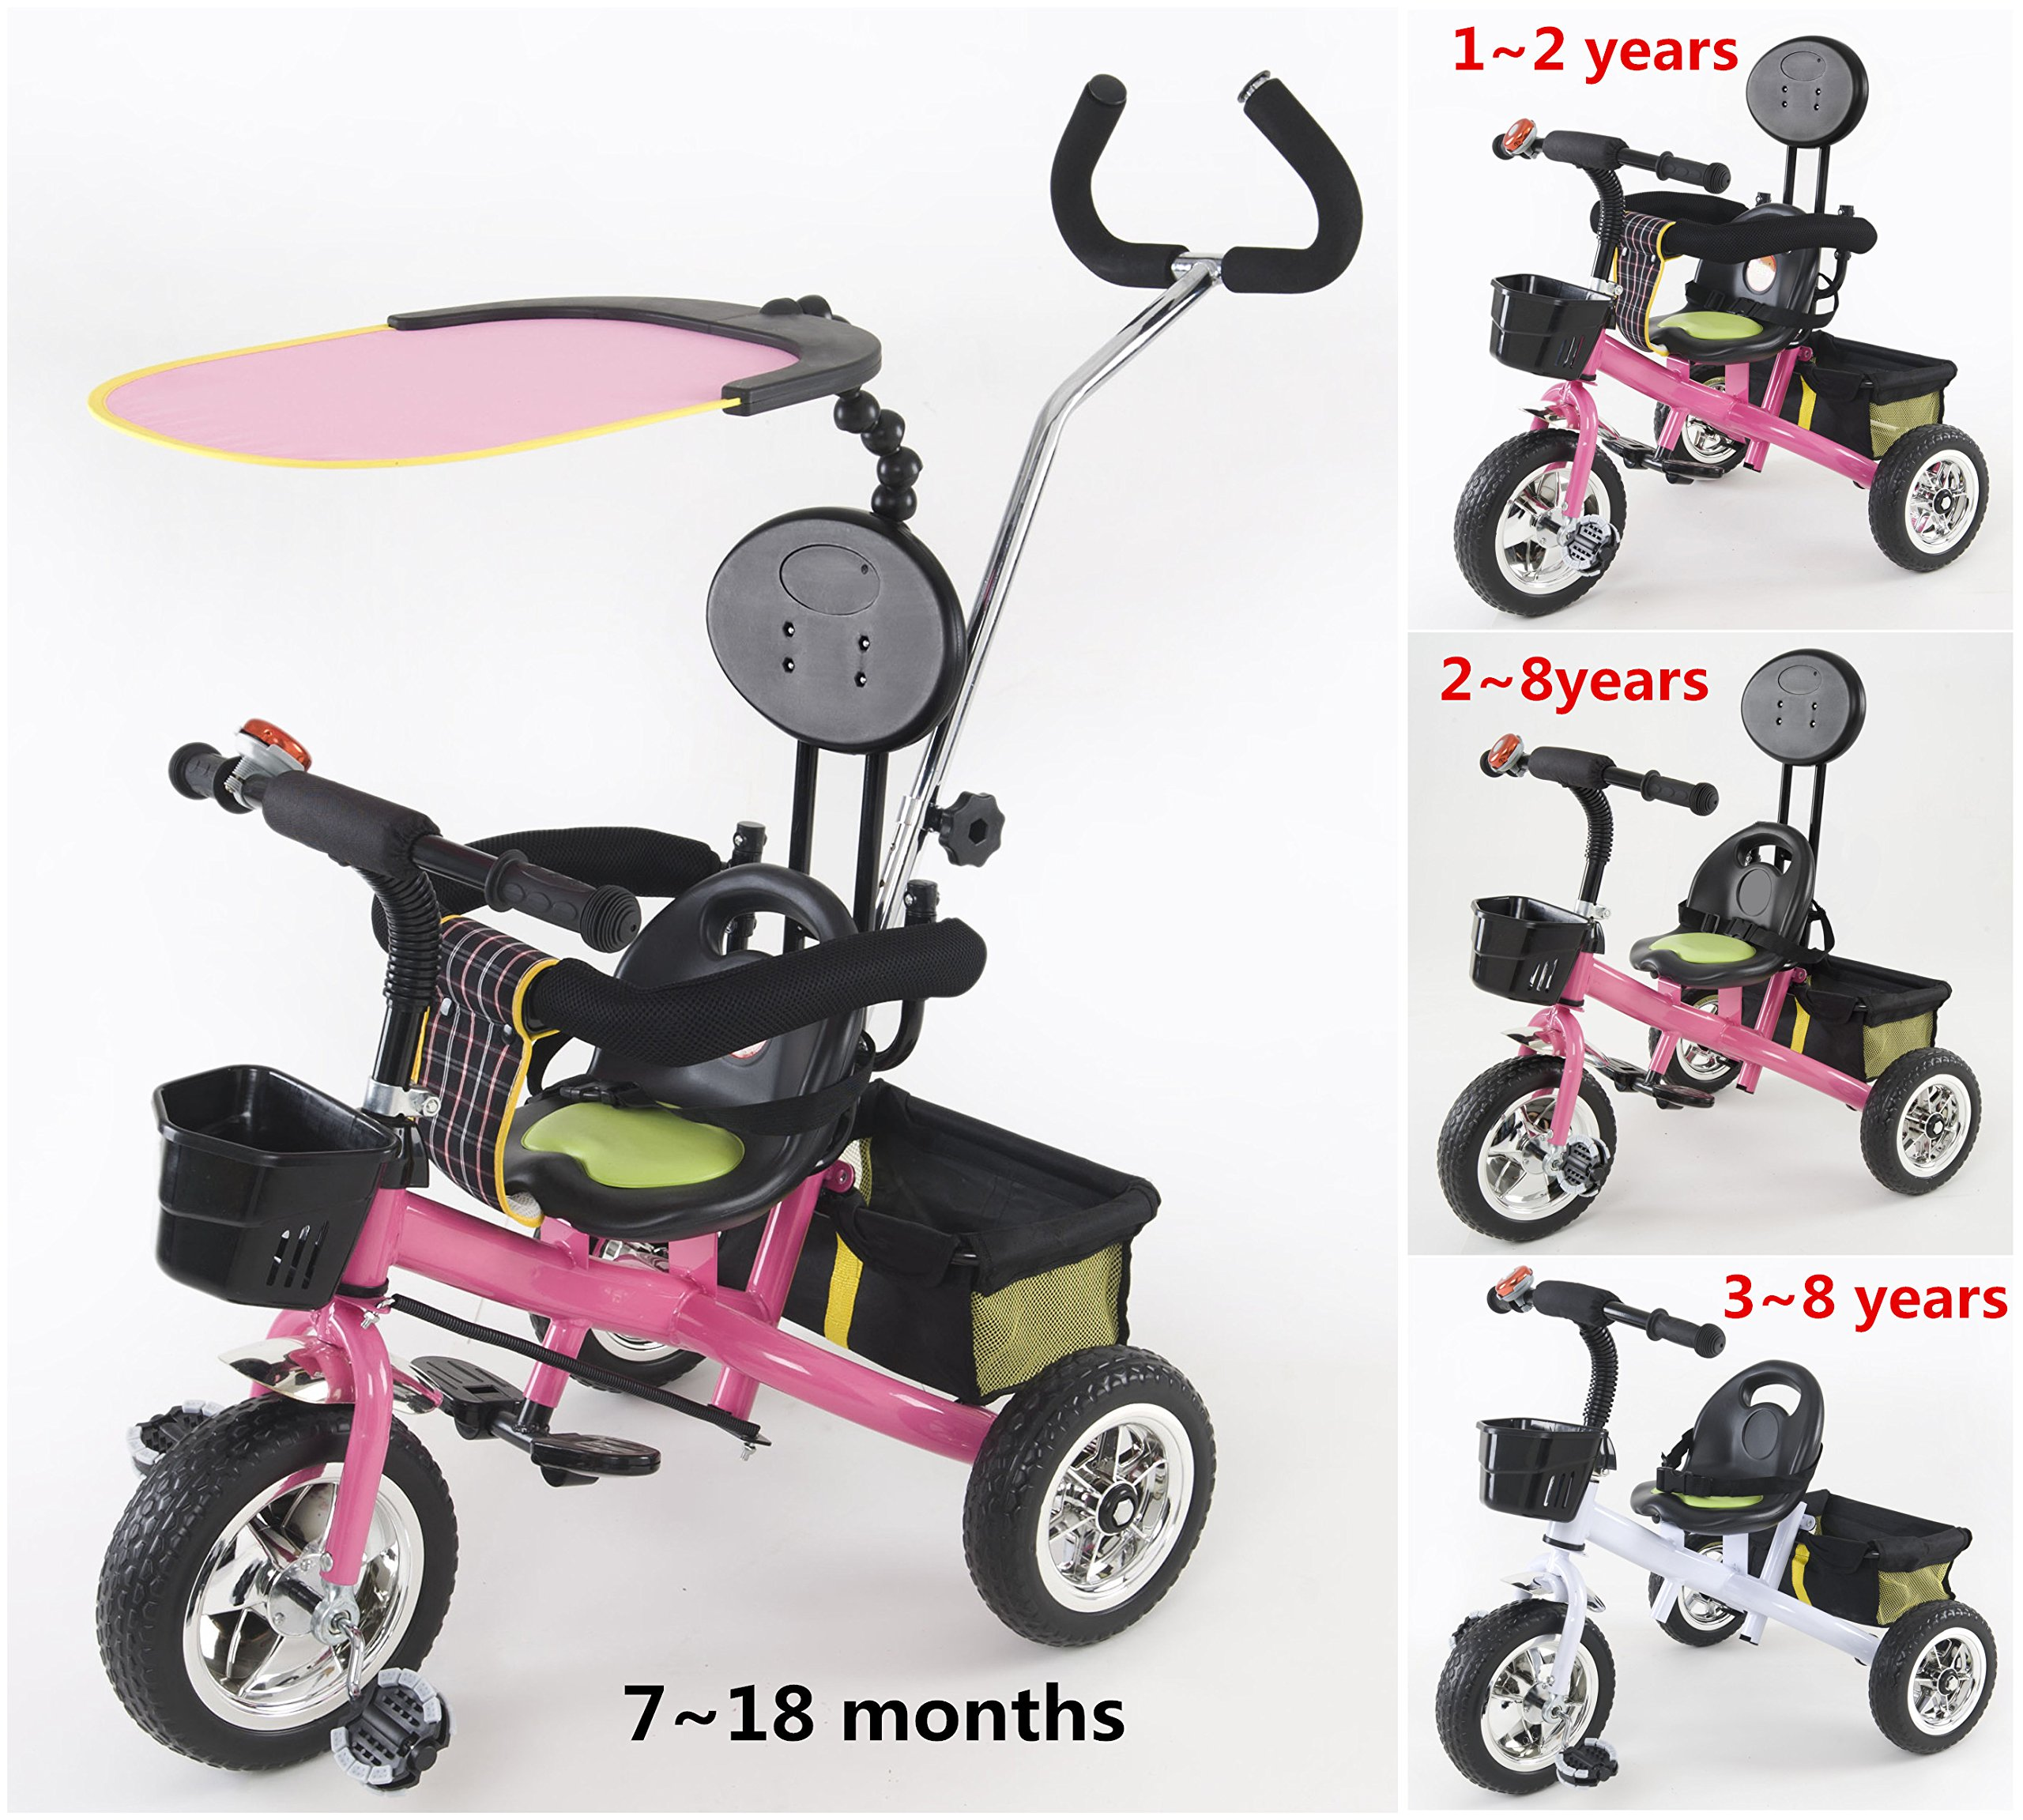 HotOne 023AK 4 In 1 Baby Children Detachable stroller Trike Classic Kids tricycle: Grows with your child(Blue) by Hotone (Image #2)